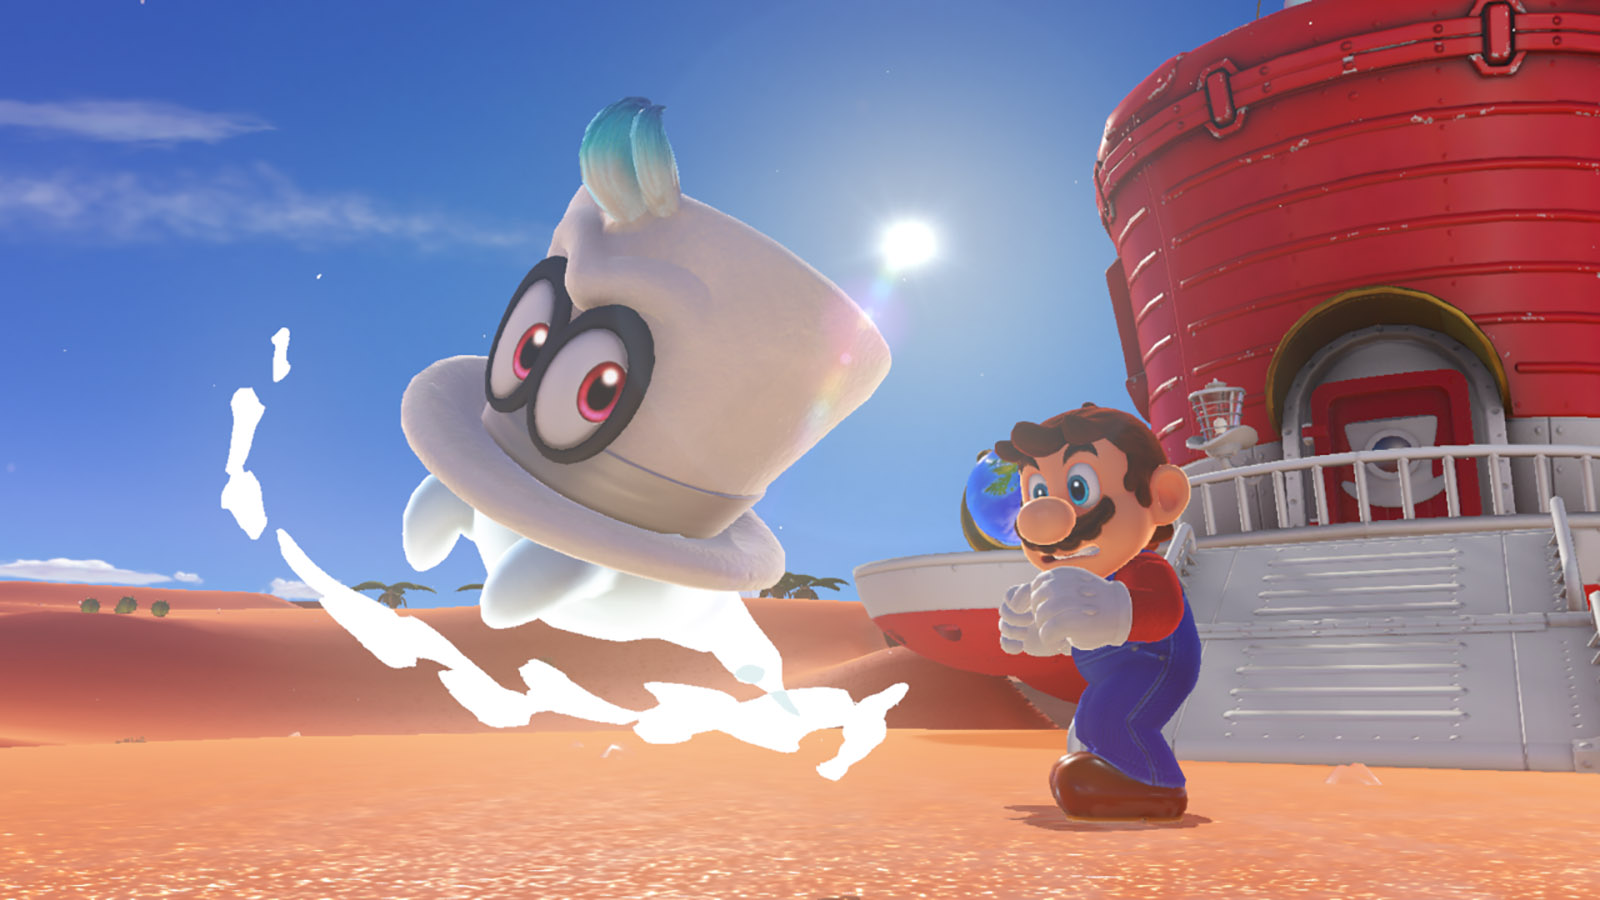 Super Mario Odyssey May Look Bizarre But It Feels Just Right